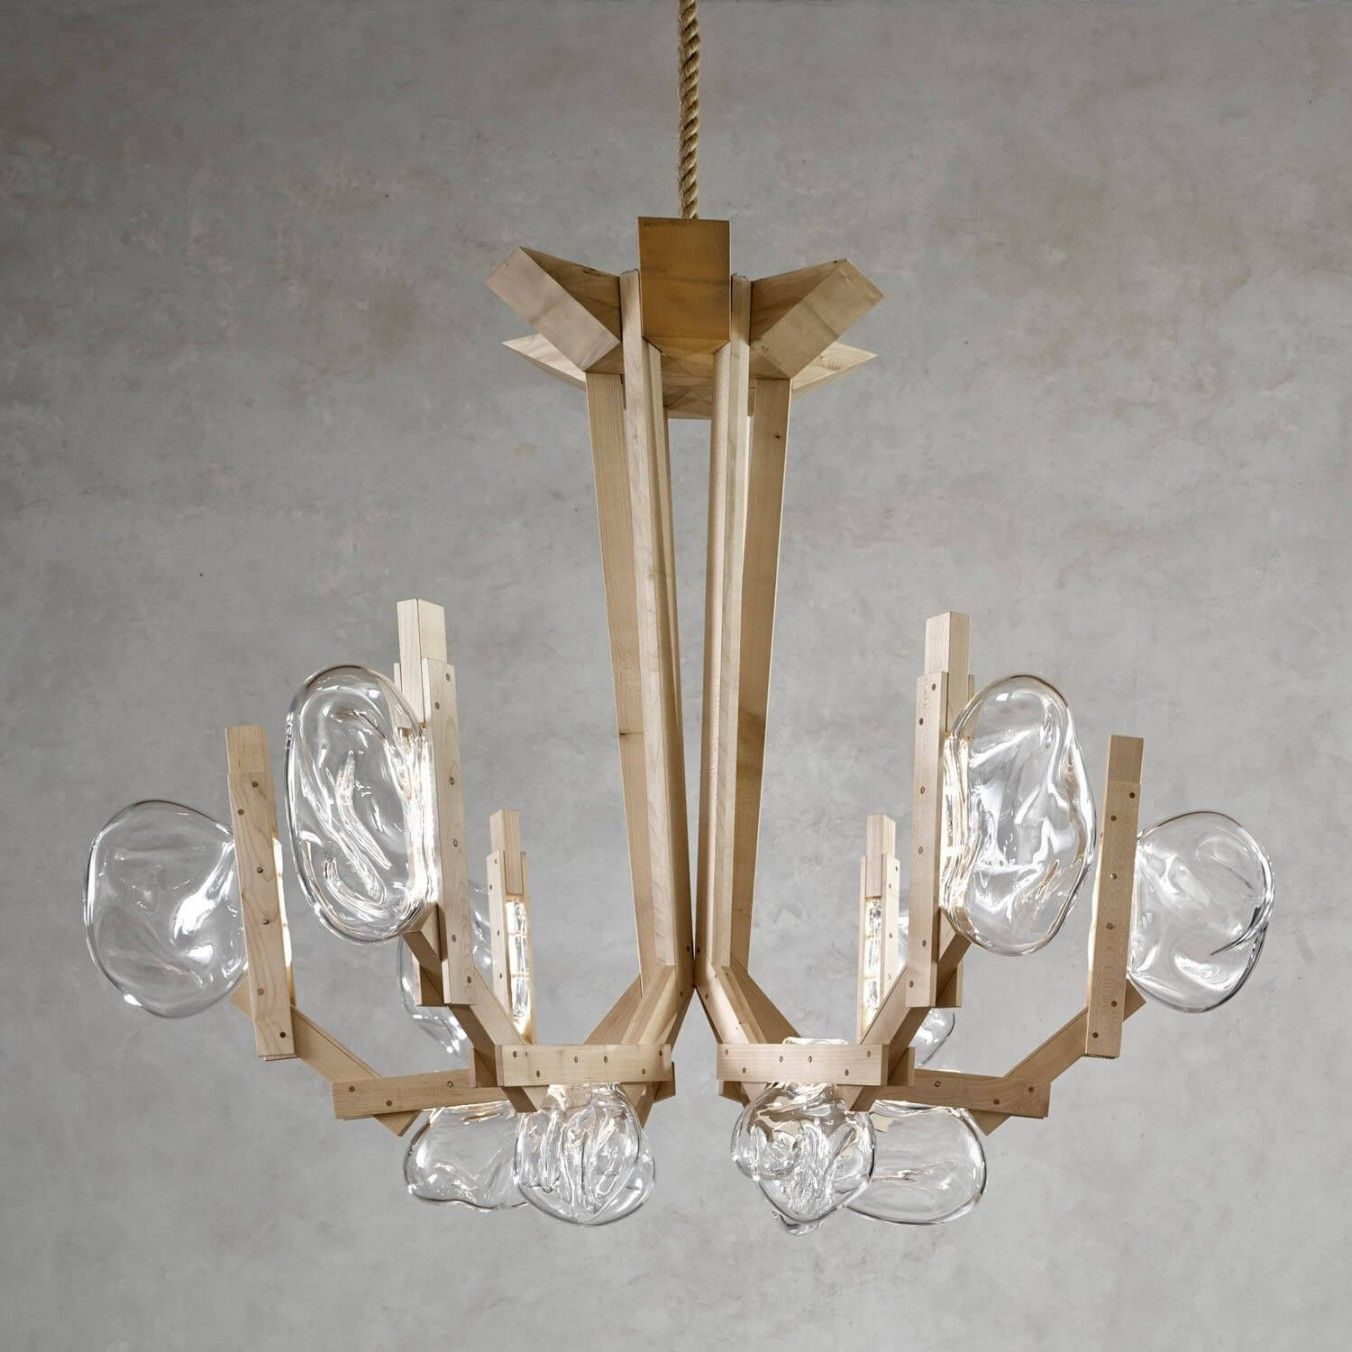 exclusive chandelier by Lasvit